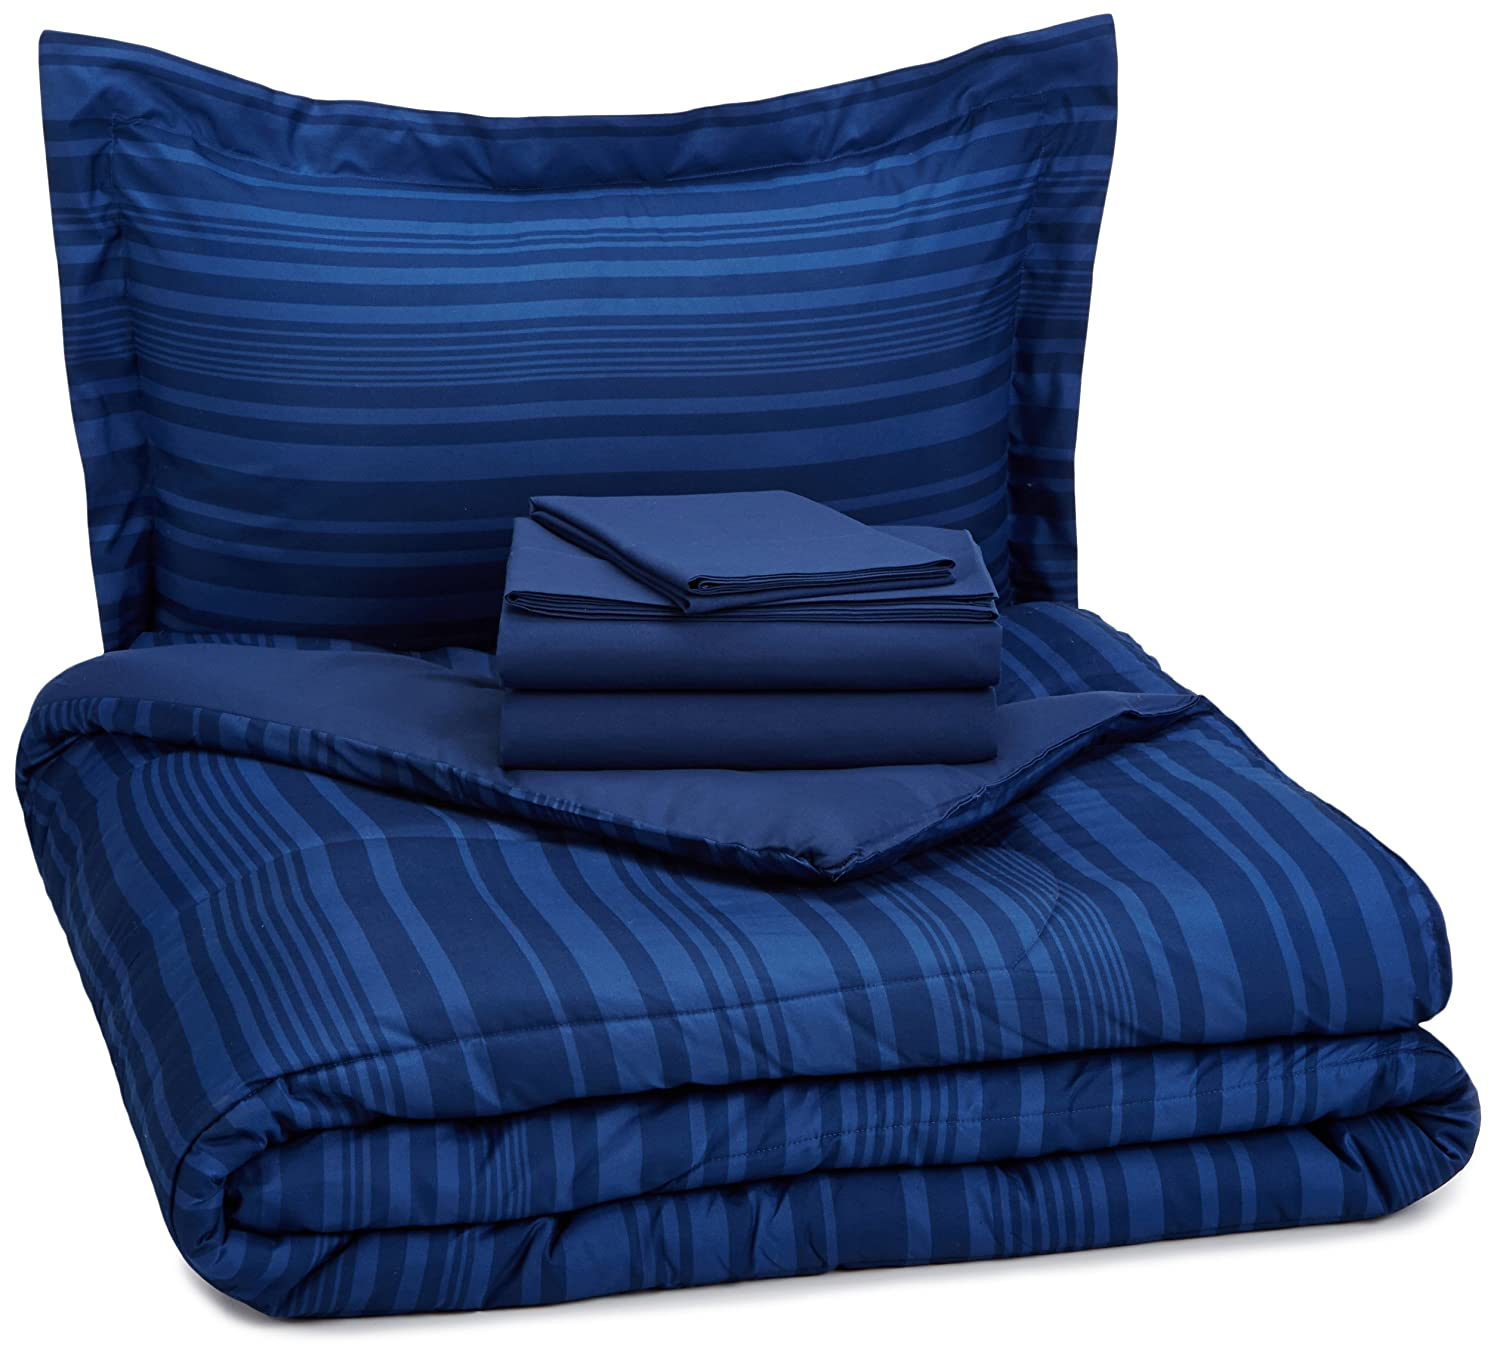 AmazonBasics 5-Piece Bed-In-A-Bag - Twin/Twin XL, Royal Blue Calvin Stripe